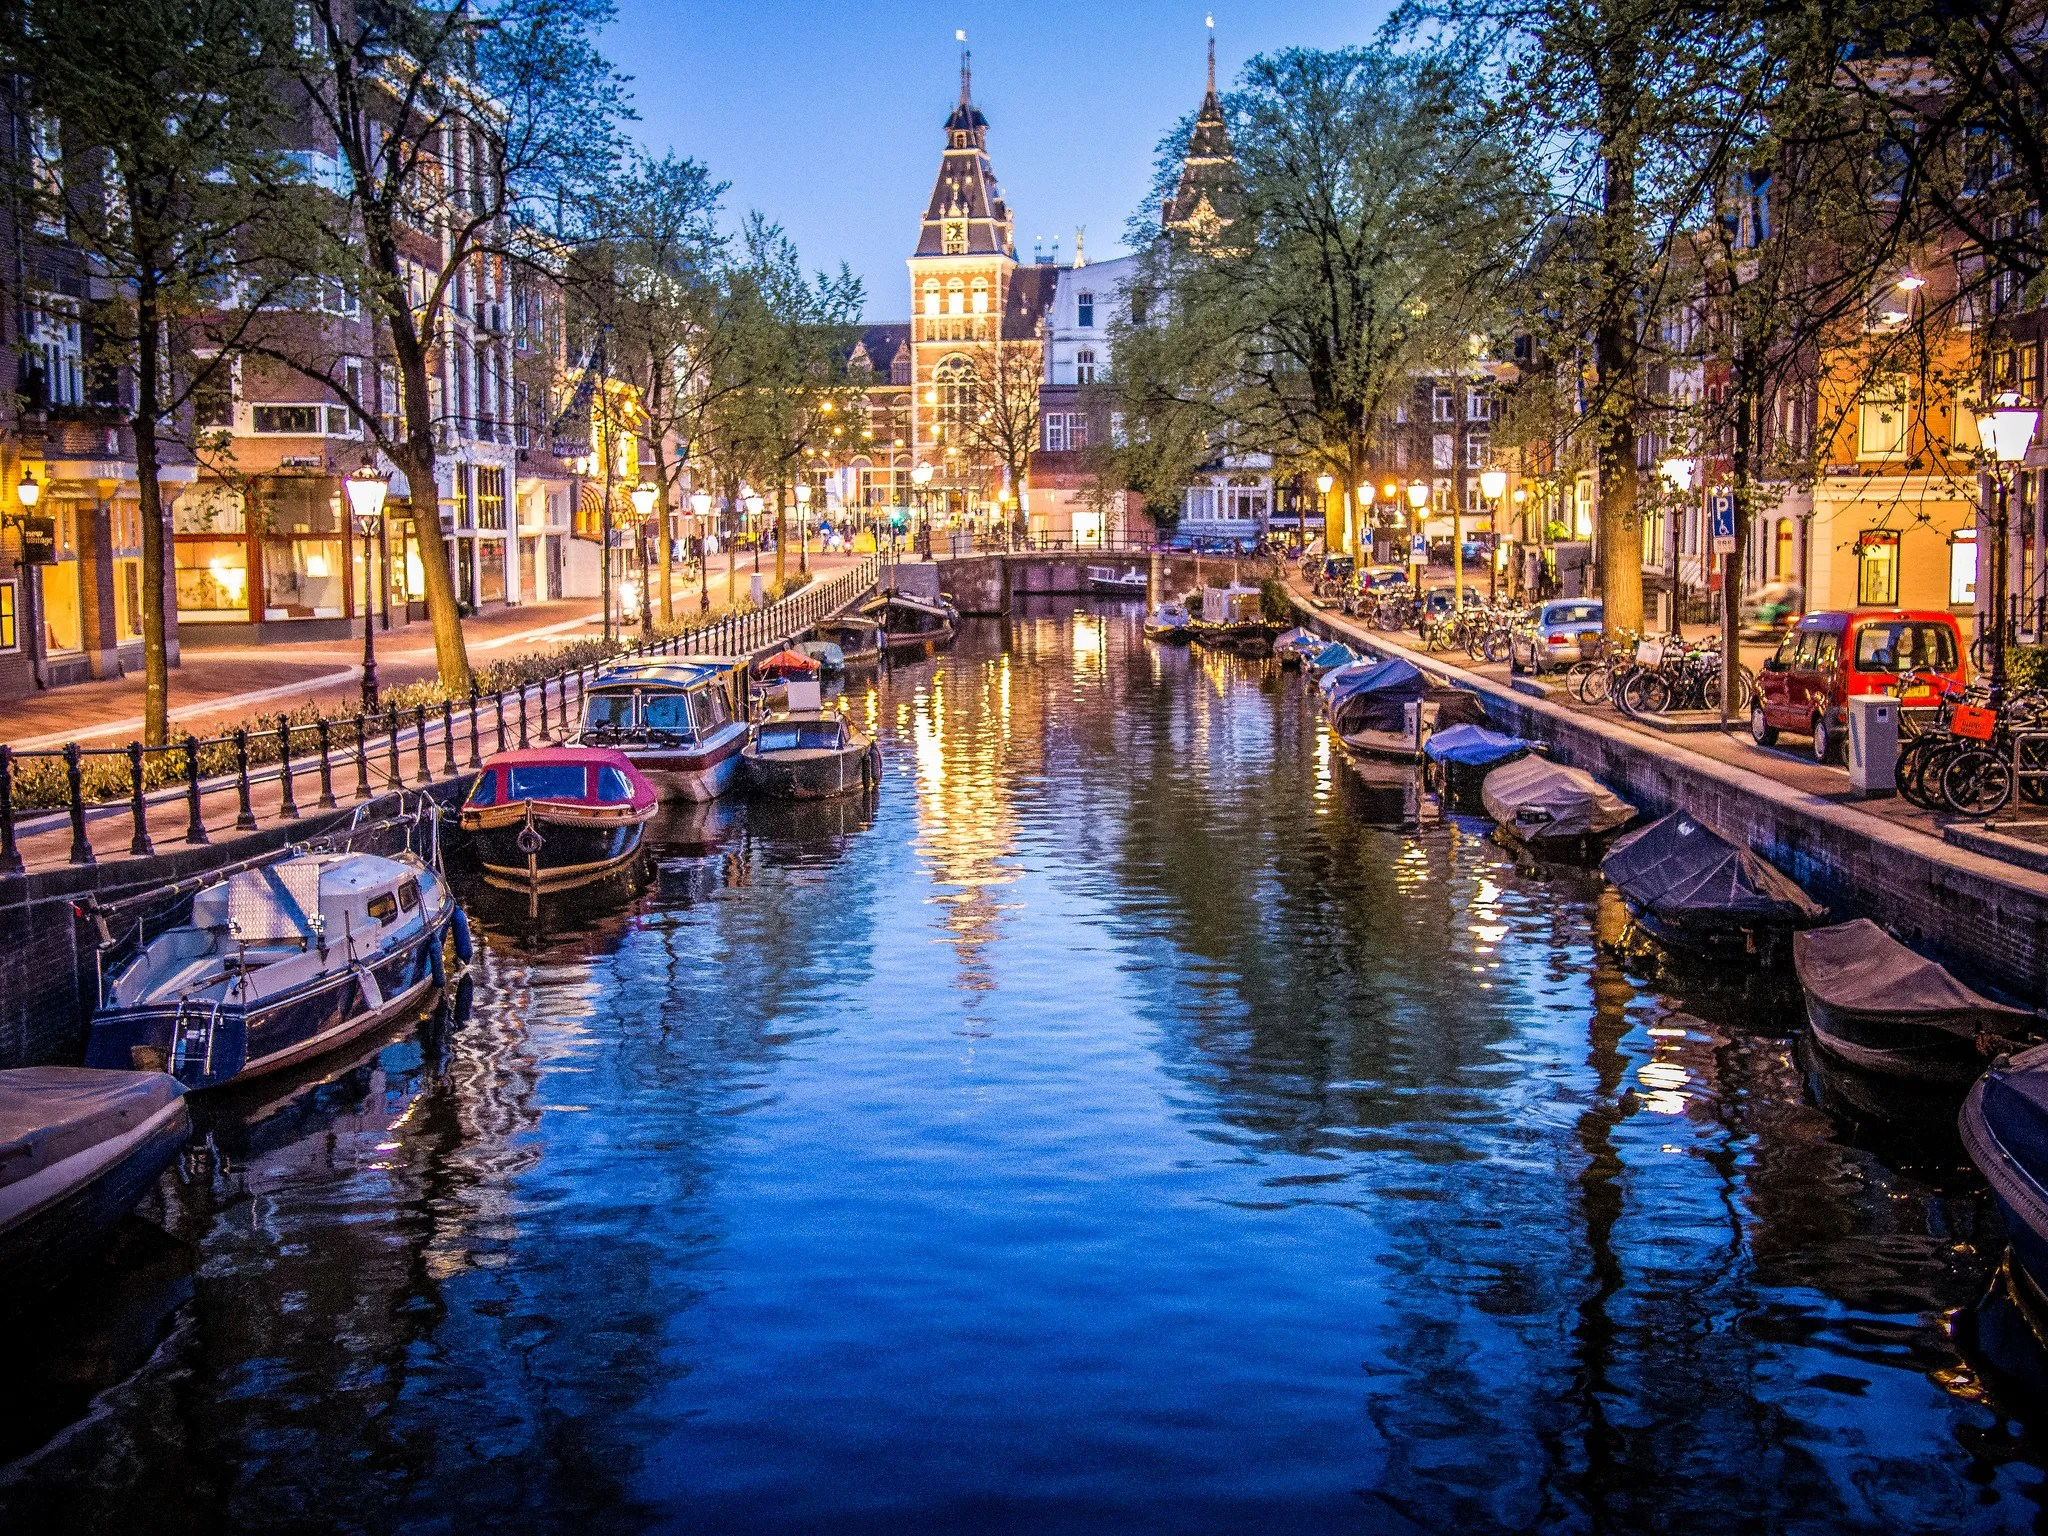 Canals and boats in Amsterdam. Photo via Flickr: Sergey Galyonkin.